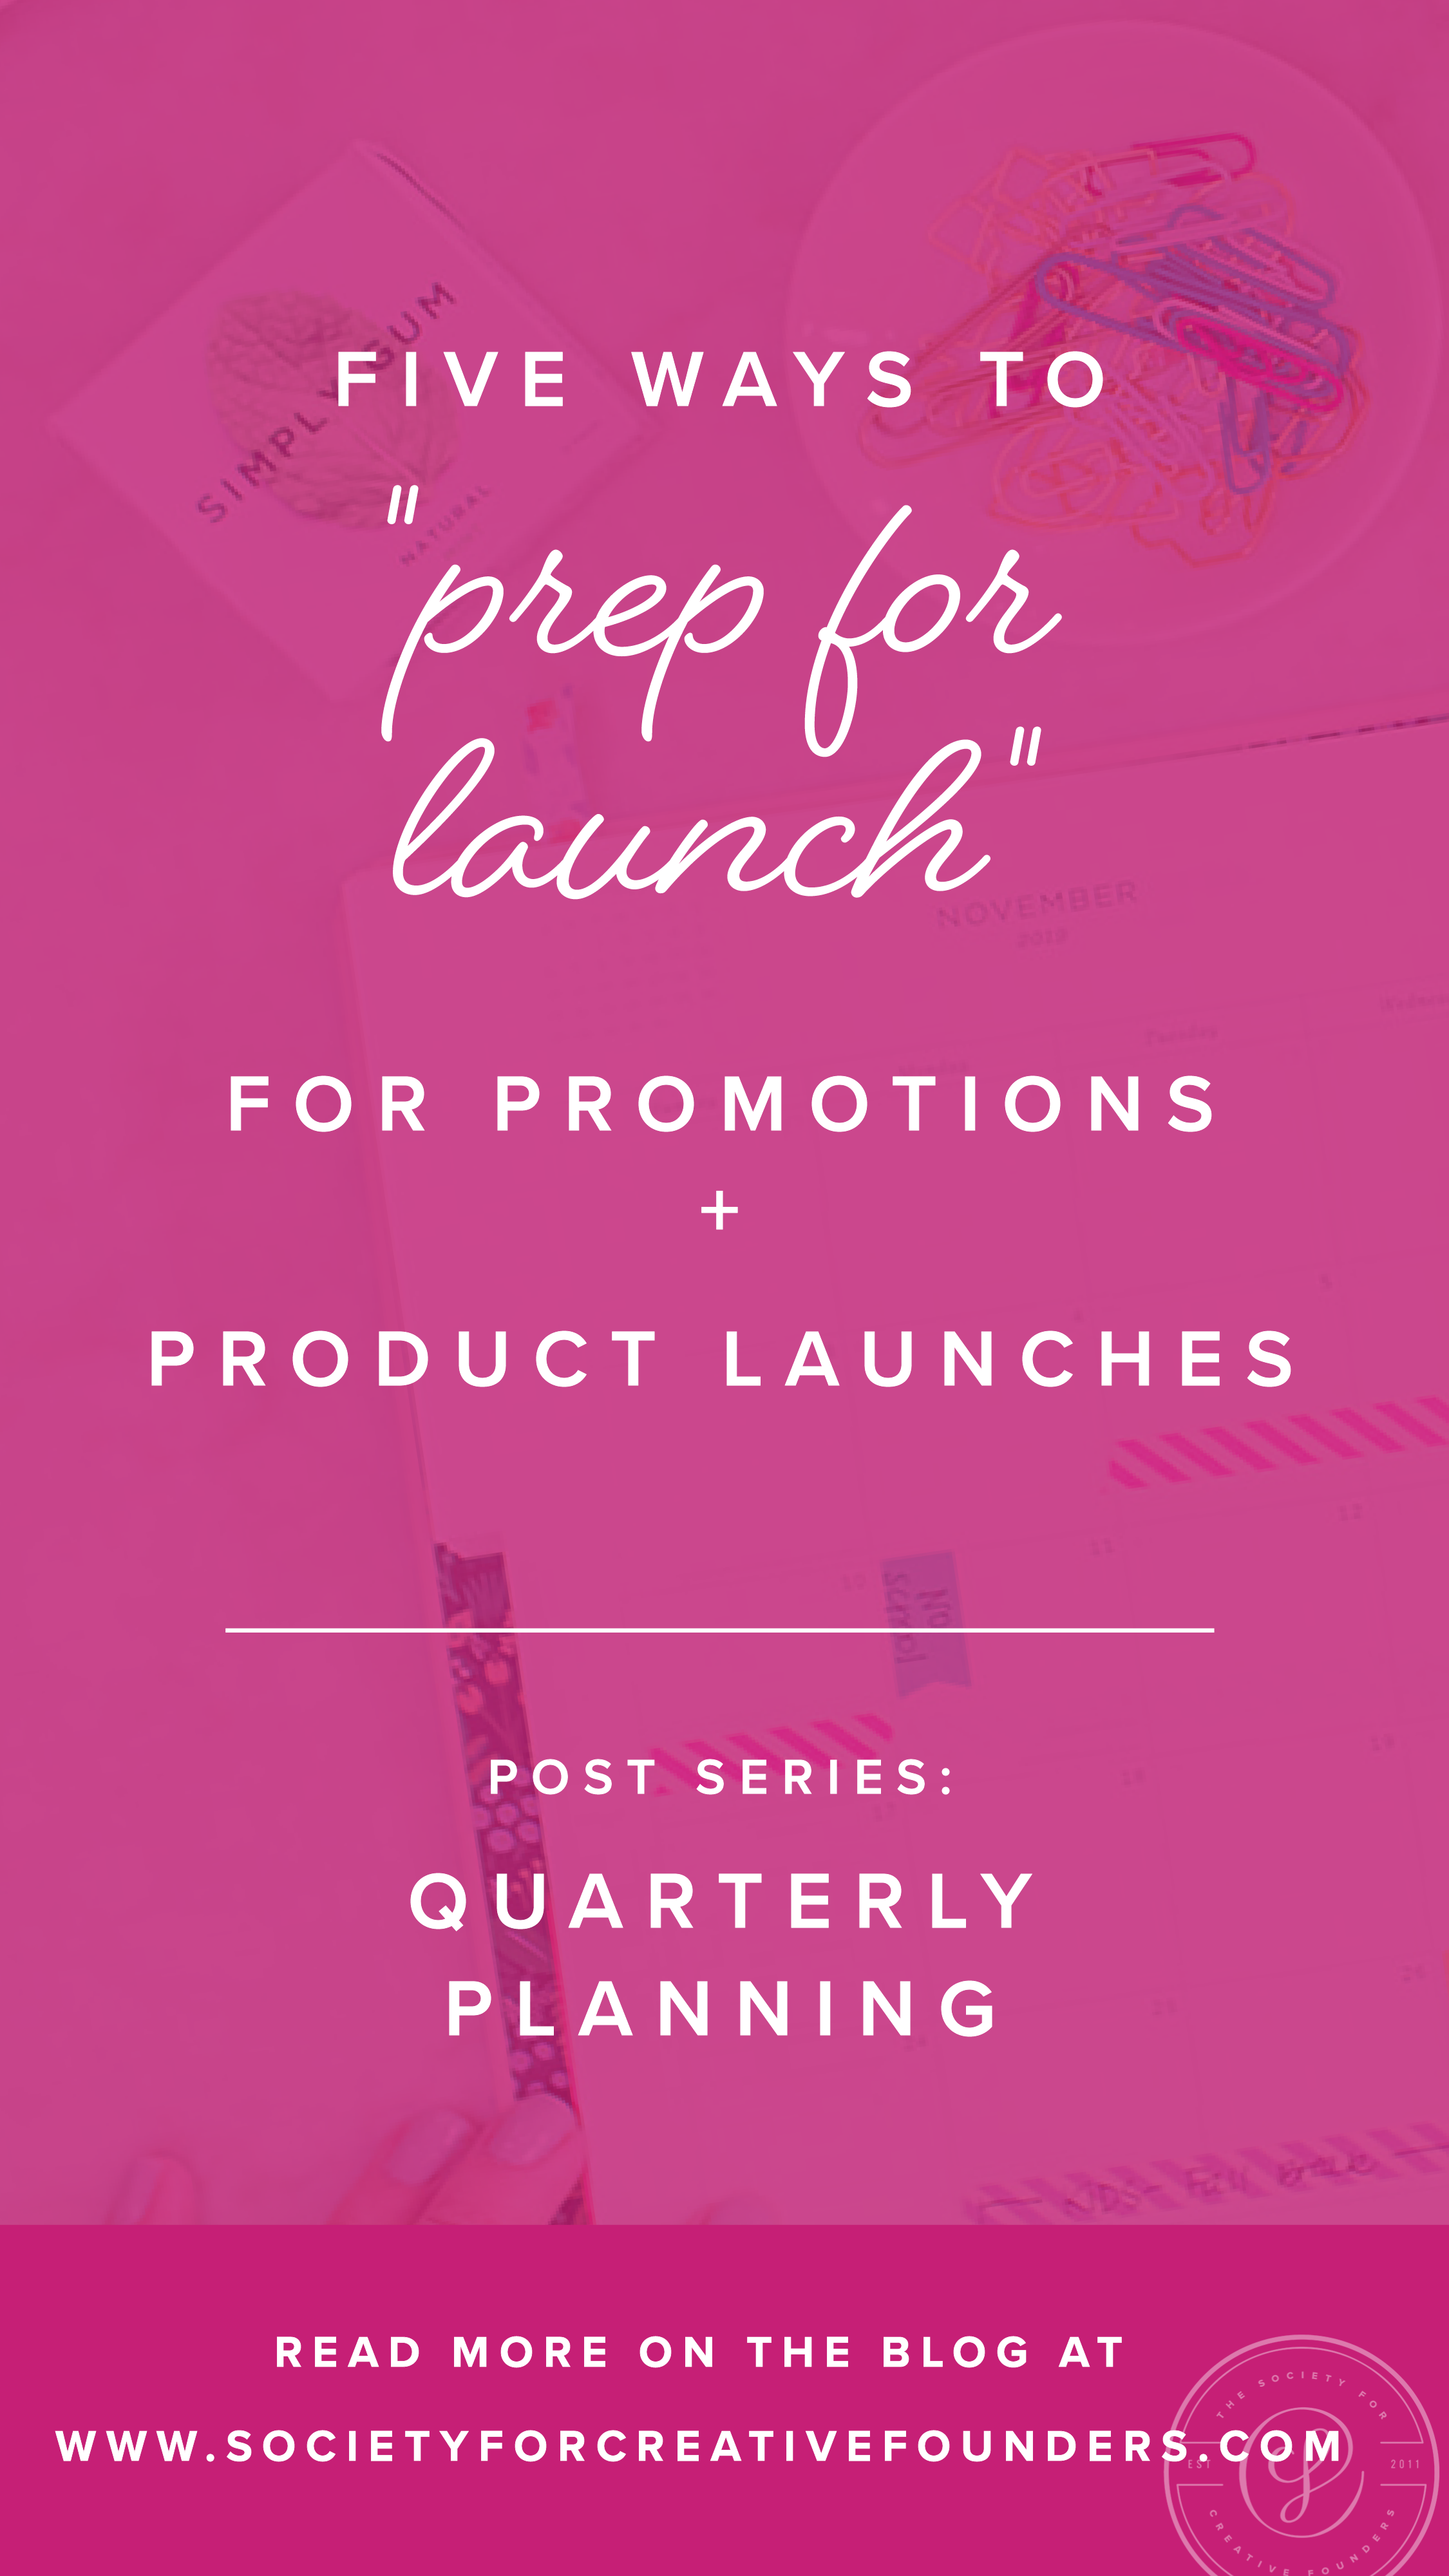 How to Prepare for a Product Launch - Society for Creative Founders